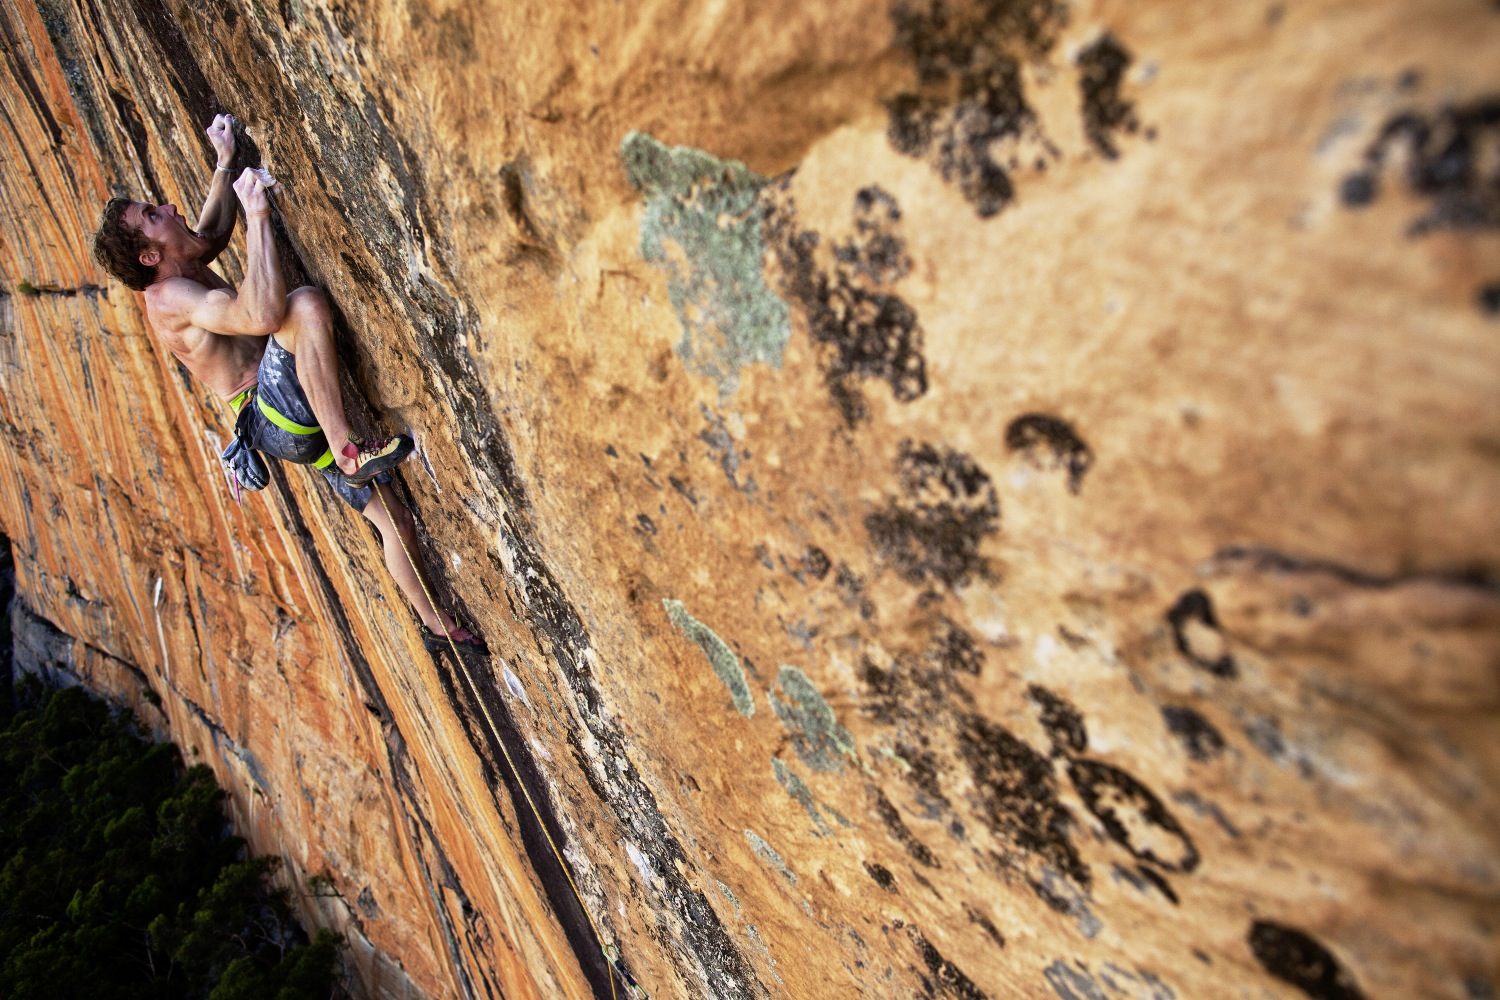 One of Australia's best climbers Ben Cossey, sends Groove Train 33/8c+ on Taipan Wall in the Grampians, Australia.